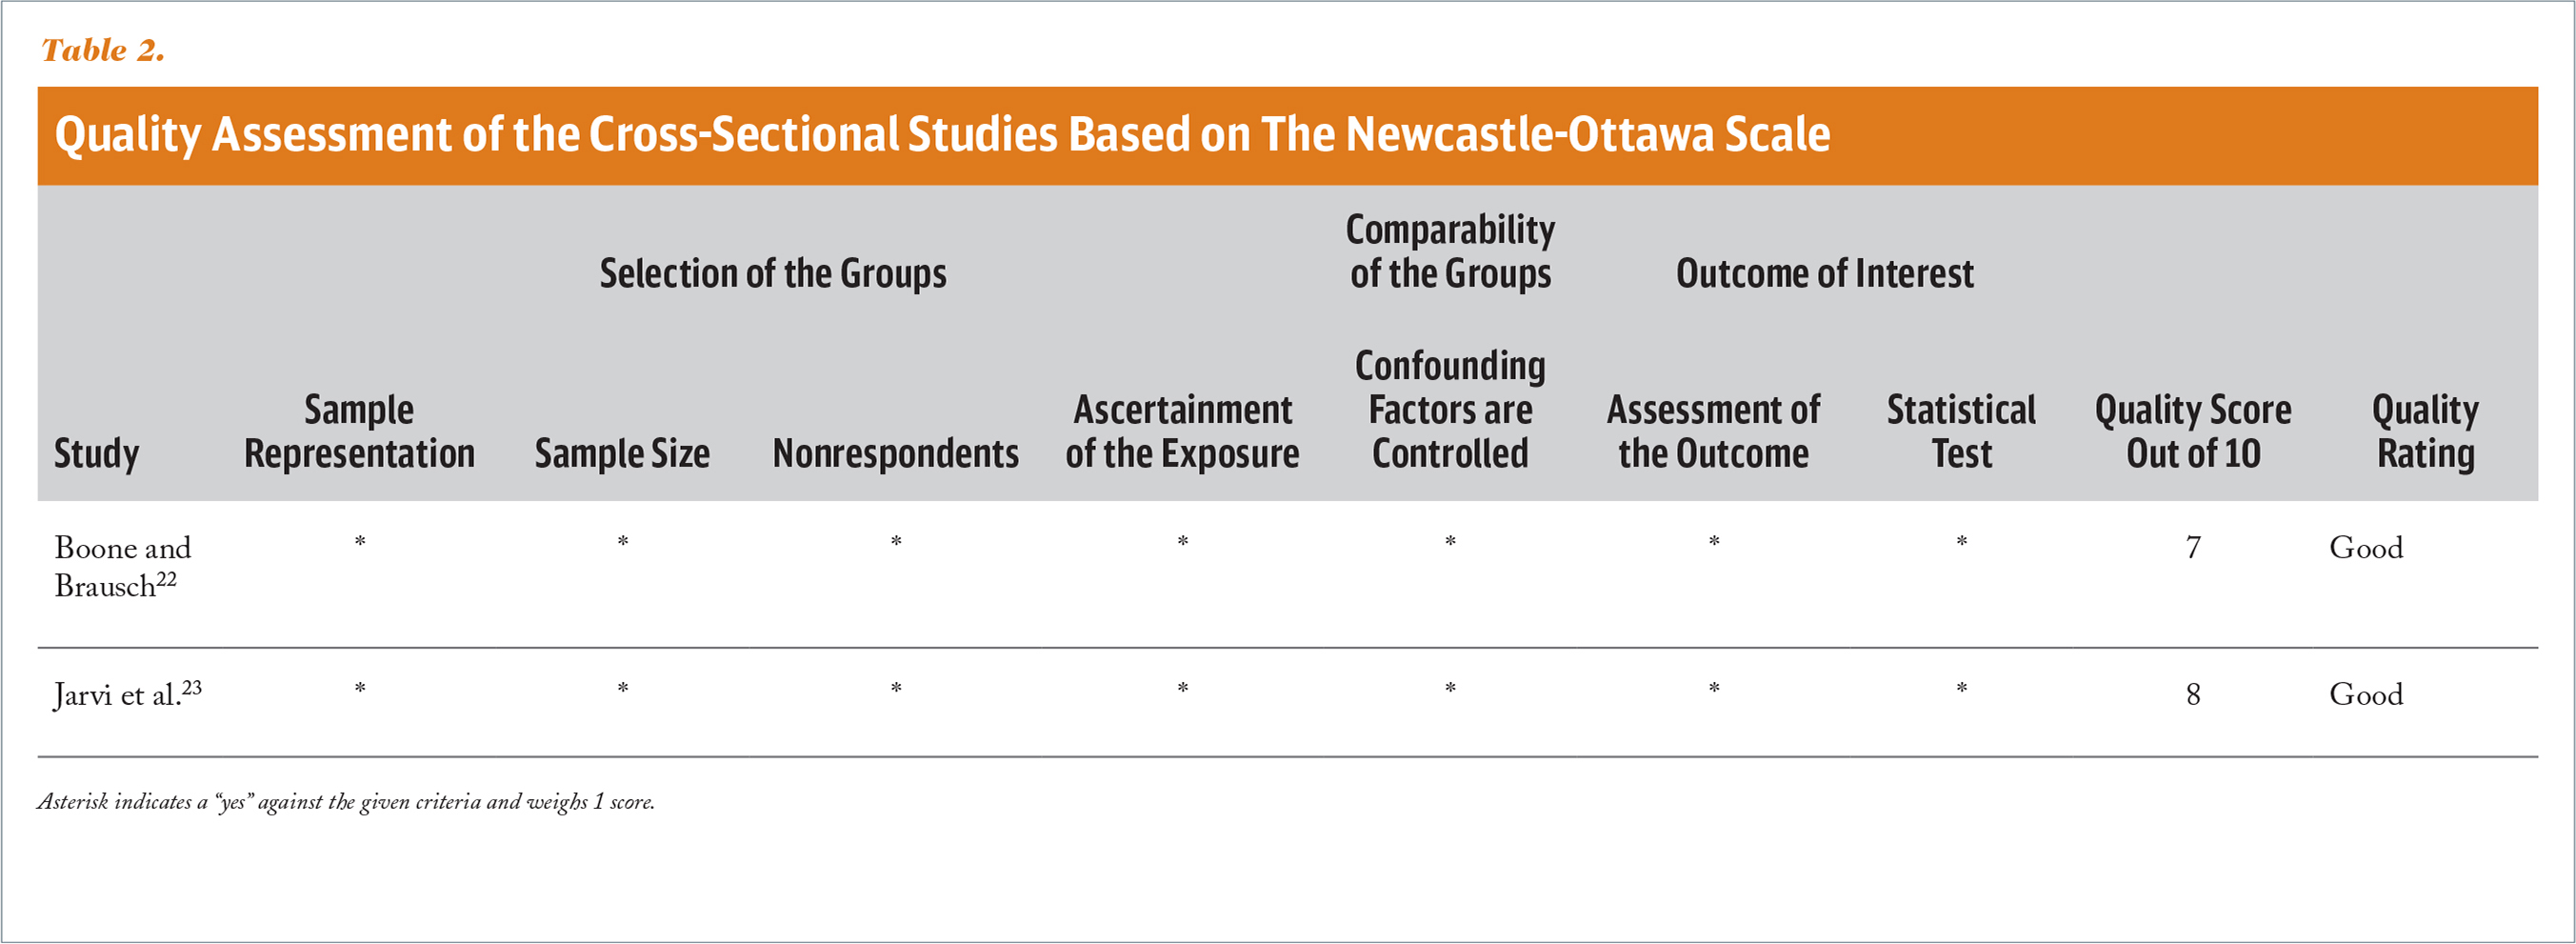 Quality Assessment of the Cross-Sectional Studies Based on The Newcastle-Ottawa Scale